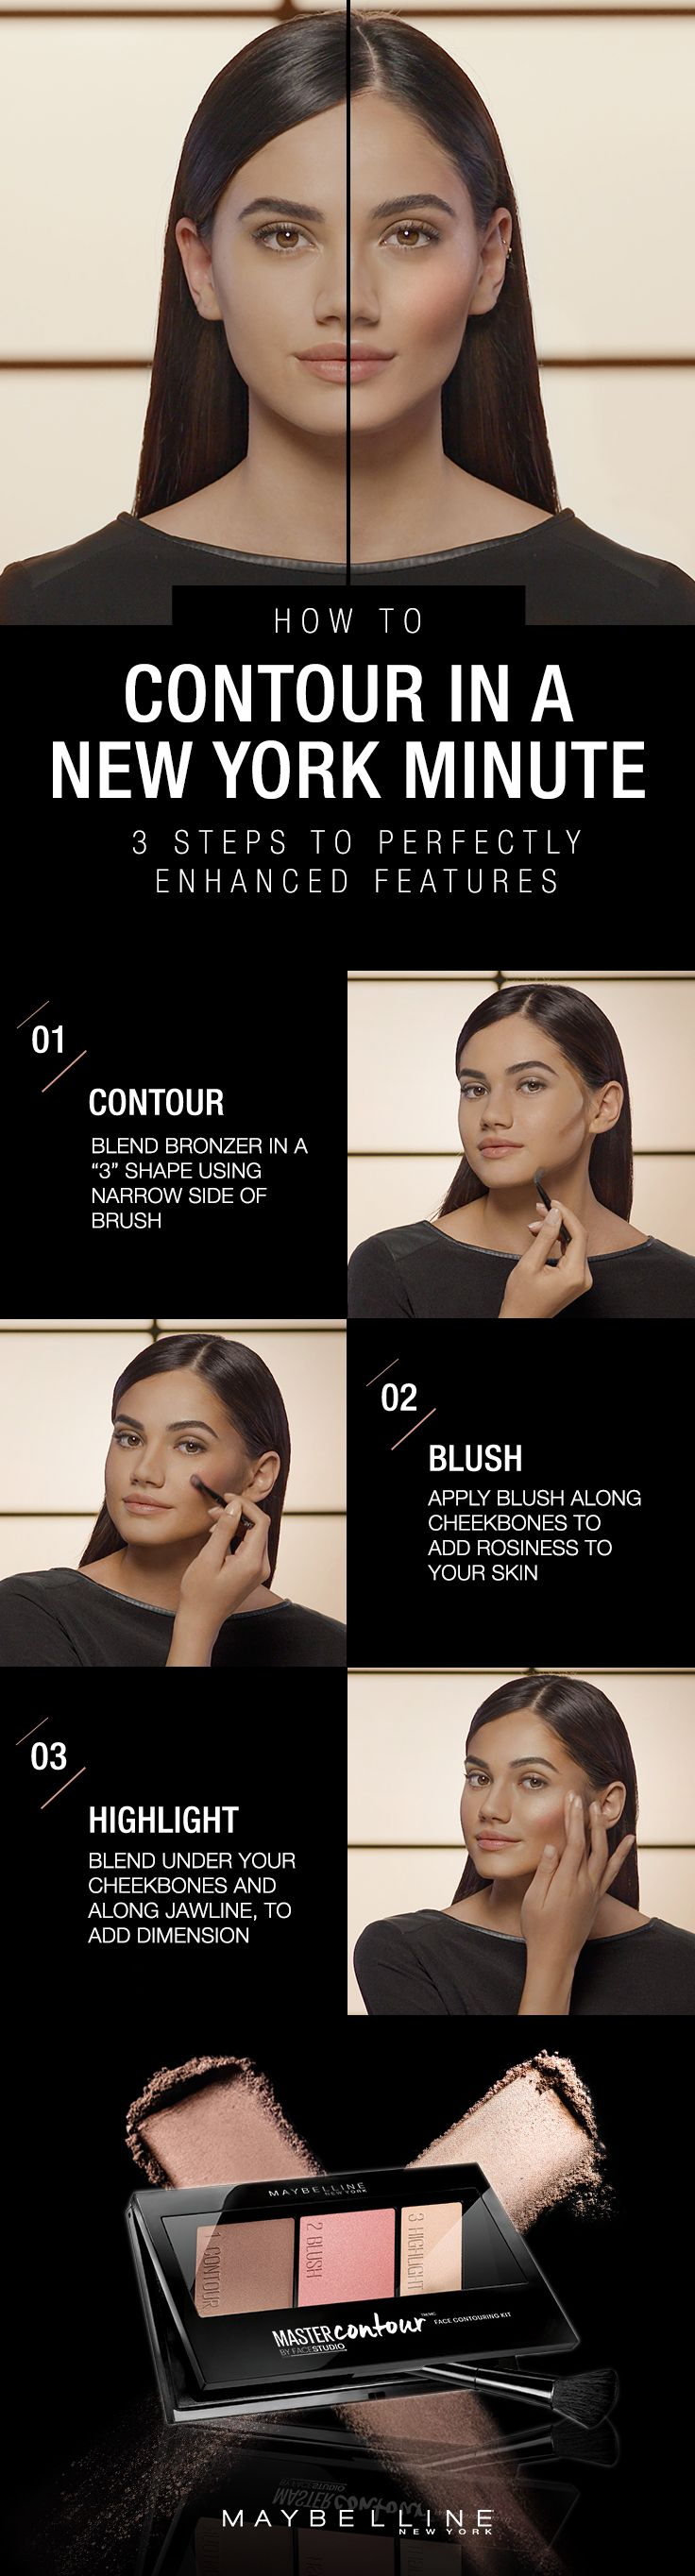 Contouring is not as scary as it looks! It only takes three easy steps to get a natural looking sculpted face with the new Master Contour palette. From Memorial Day to weekend adventures, take on the summer with a natural glow.